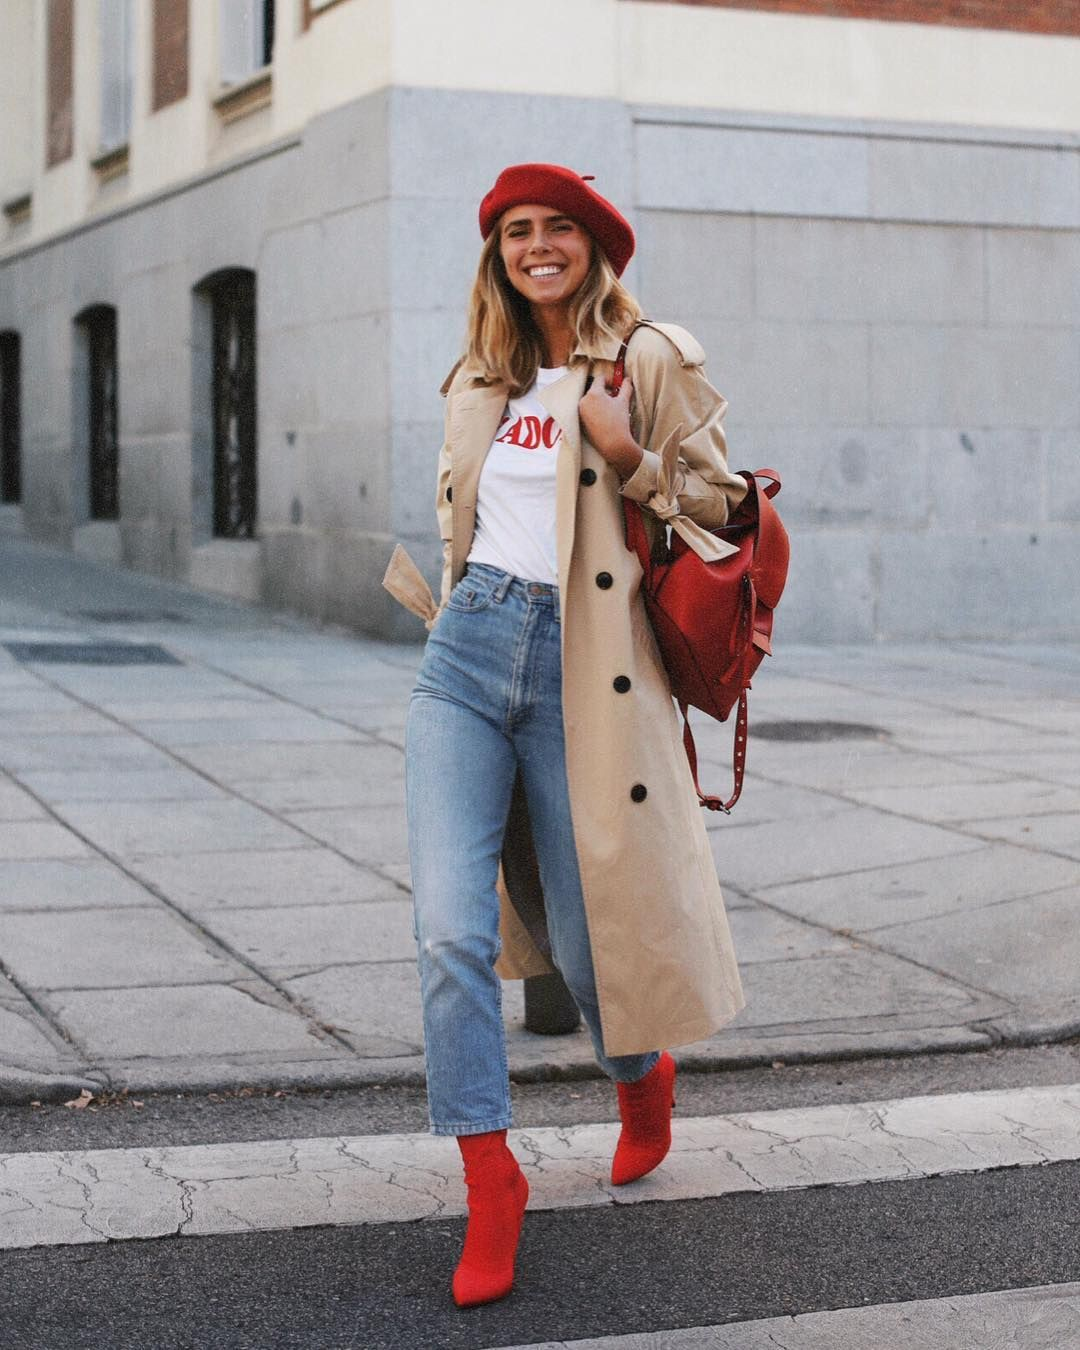 Dresses ideas lucia barcena instagram, street fashion, casual wear, trench coat, t shirt